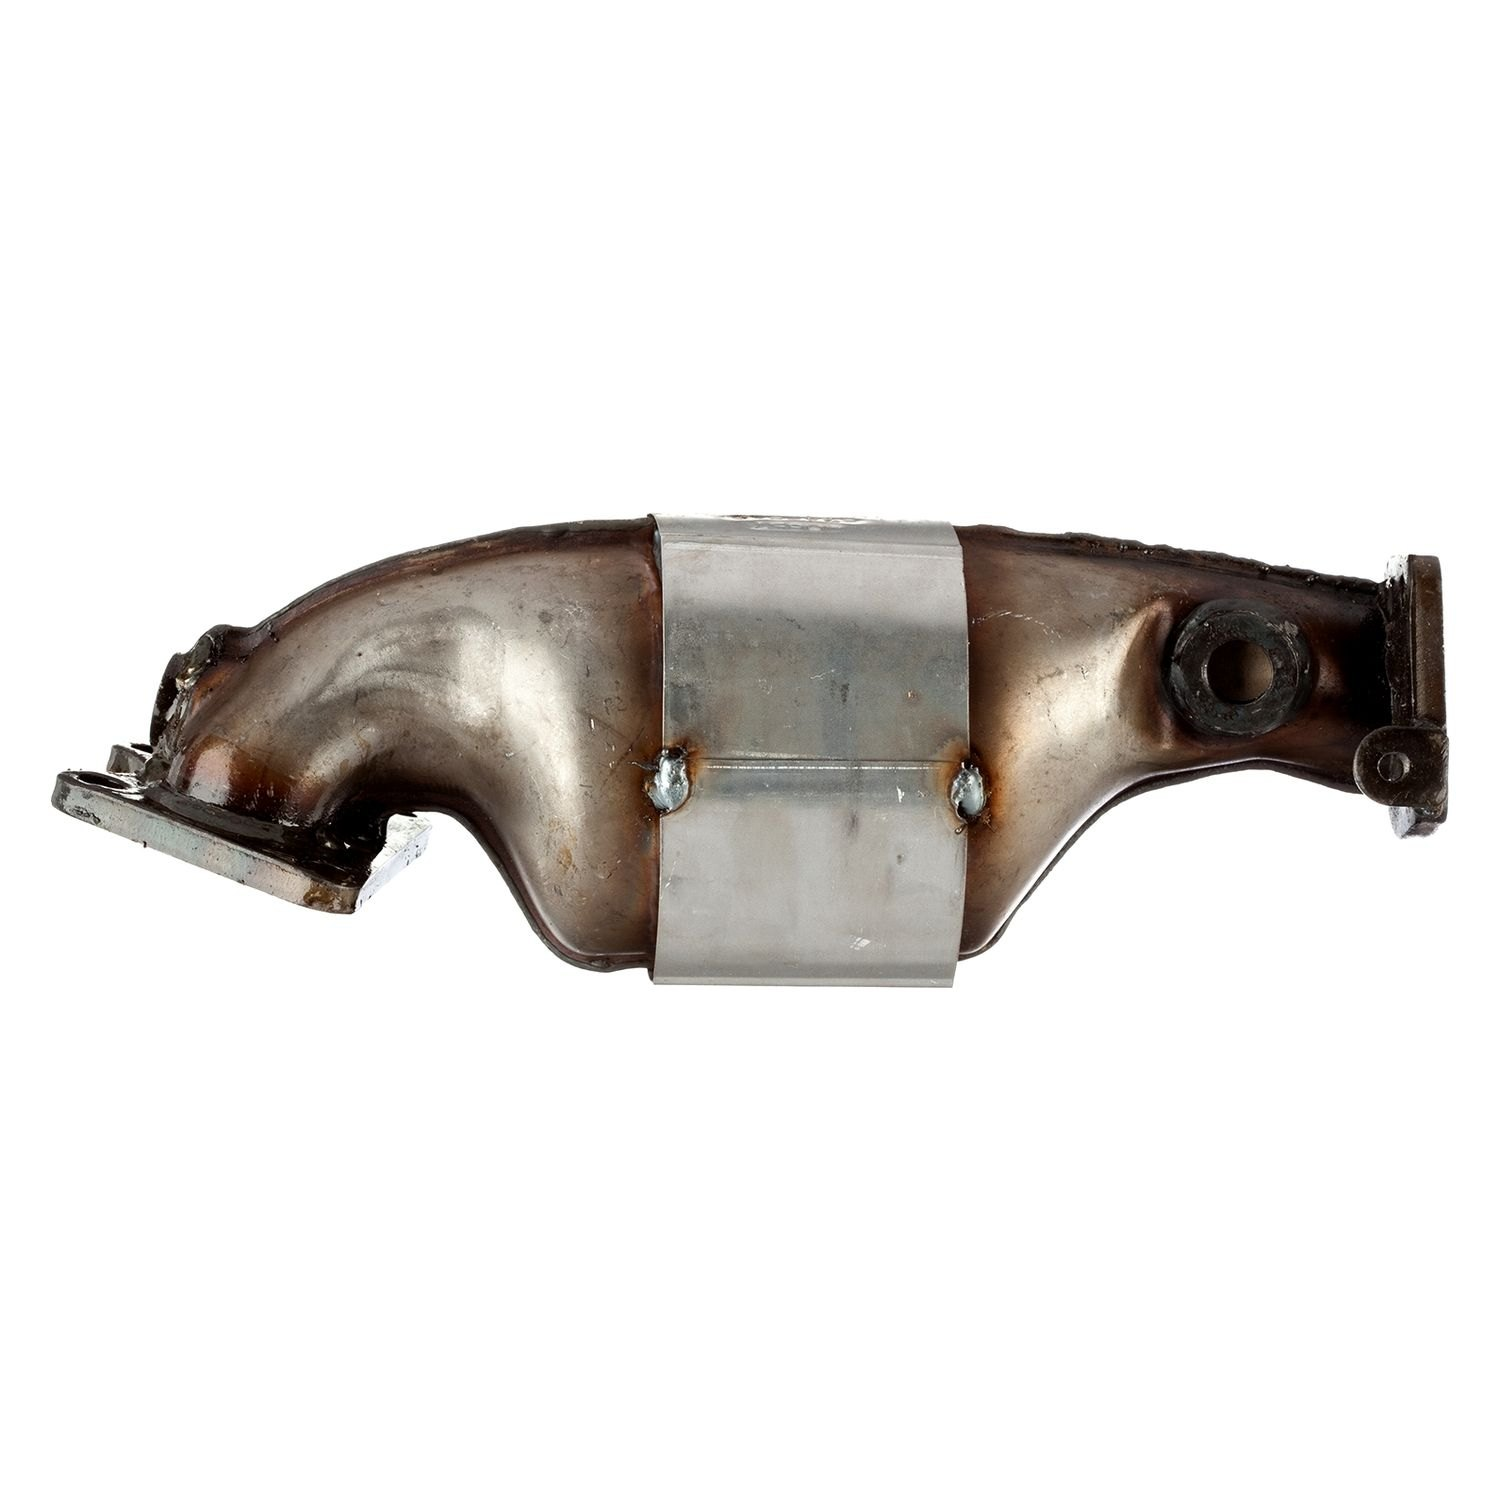 Acura MDX 2003 Stainless Steel Natural Exhaust